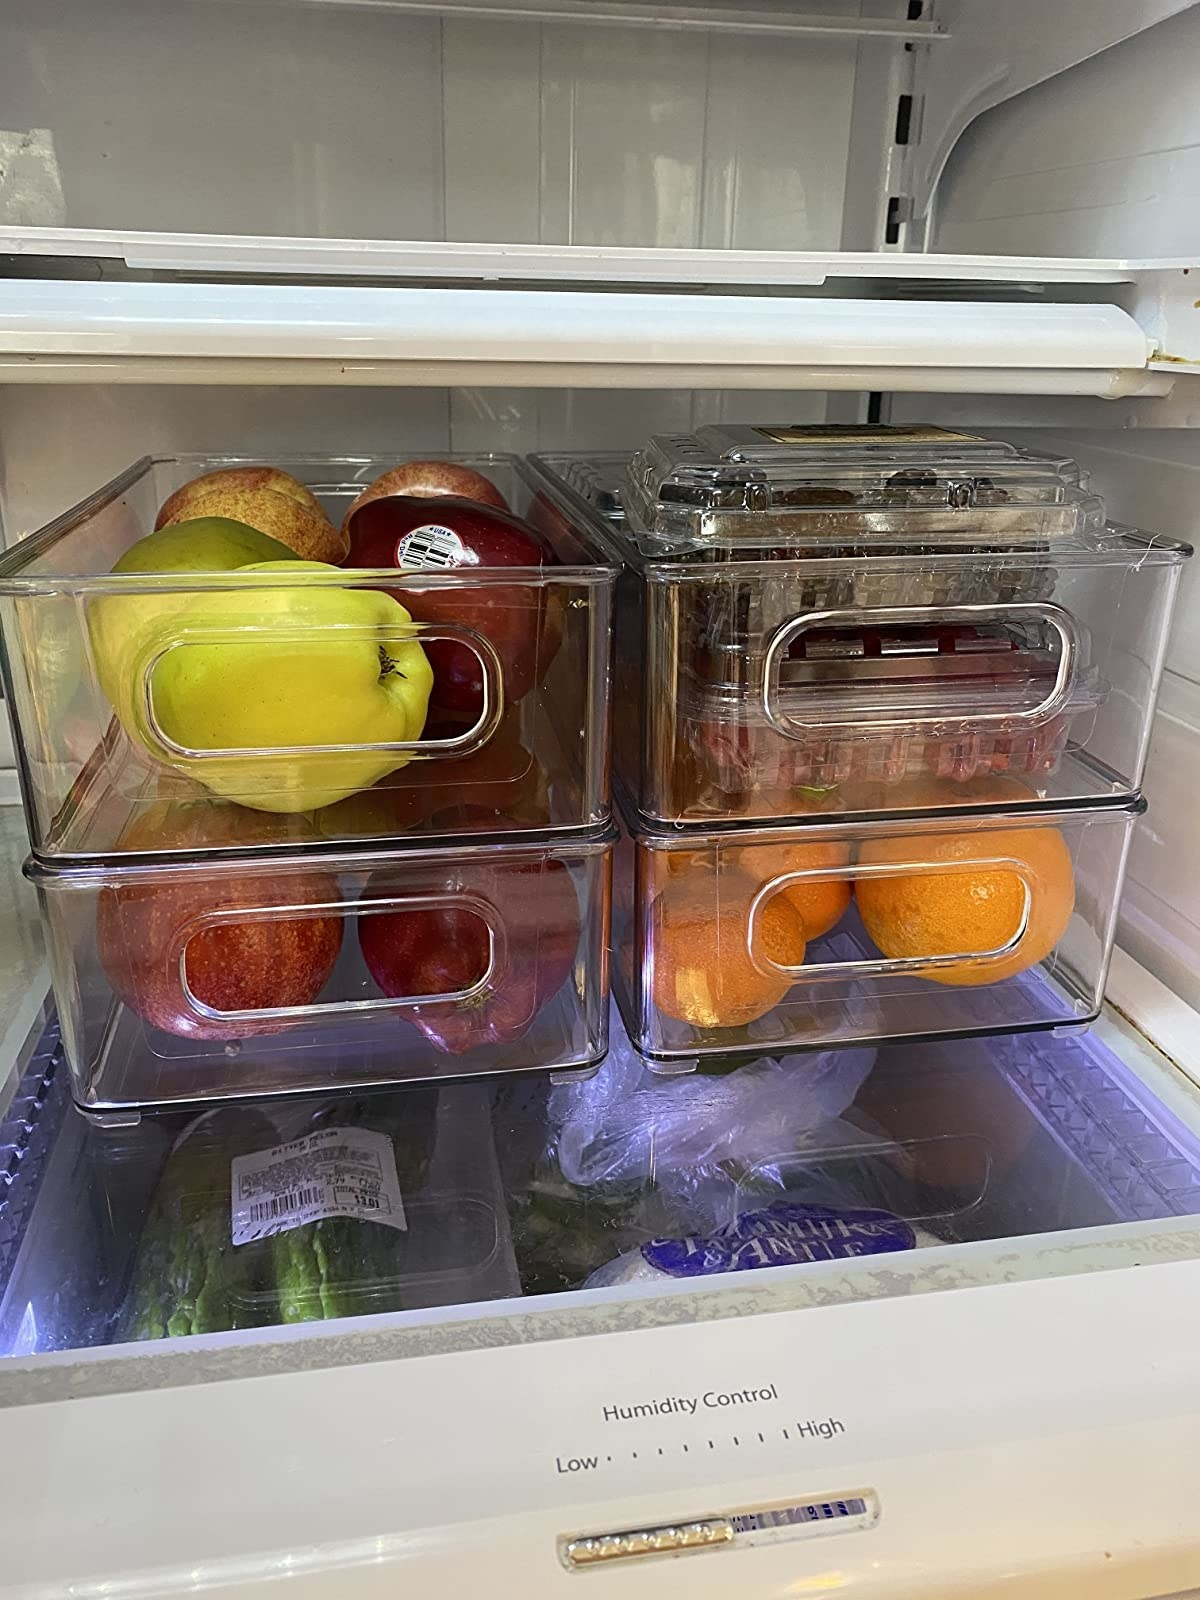 reviewer image of four stackable bins with fruit in them in a fridge